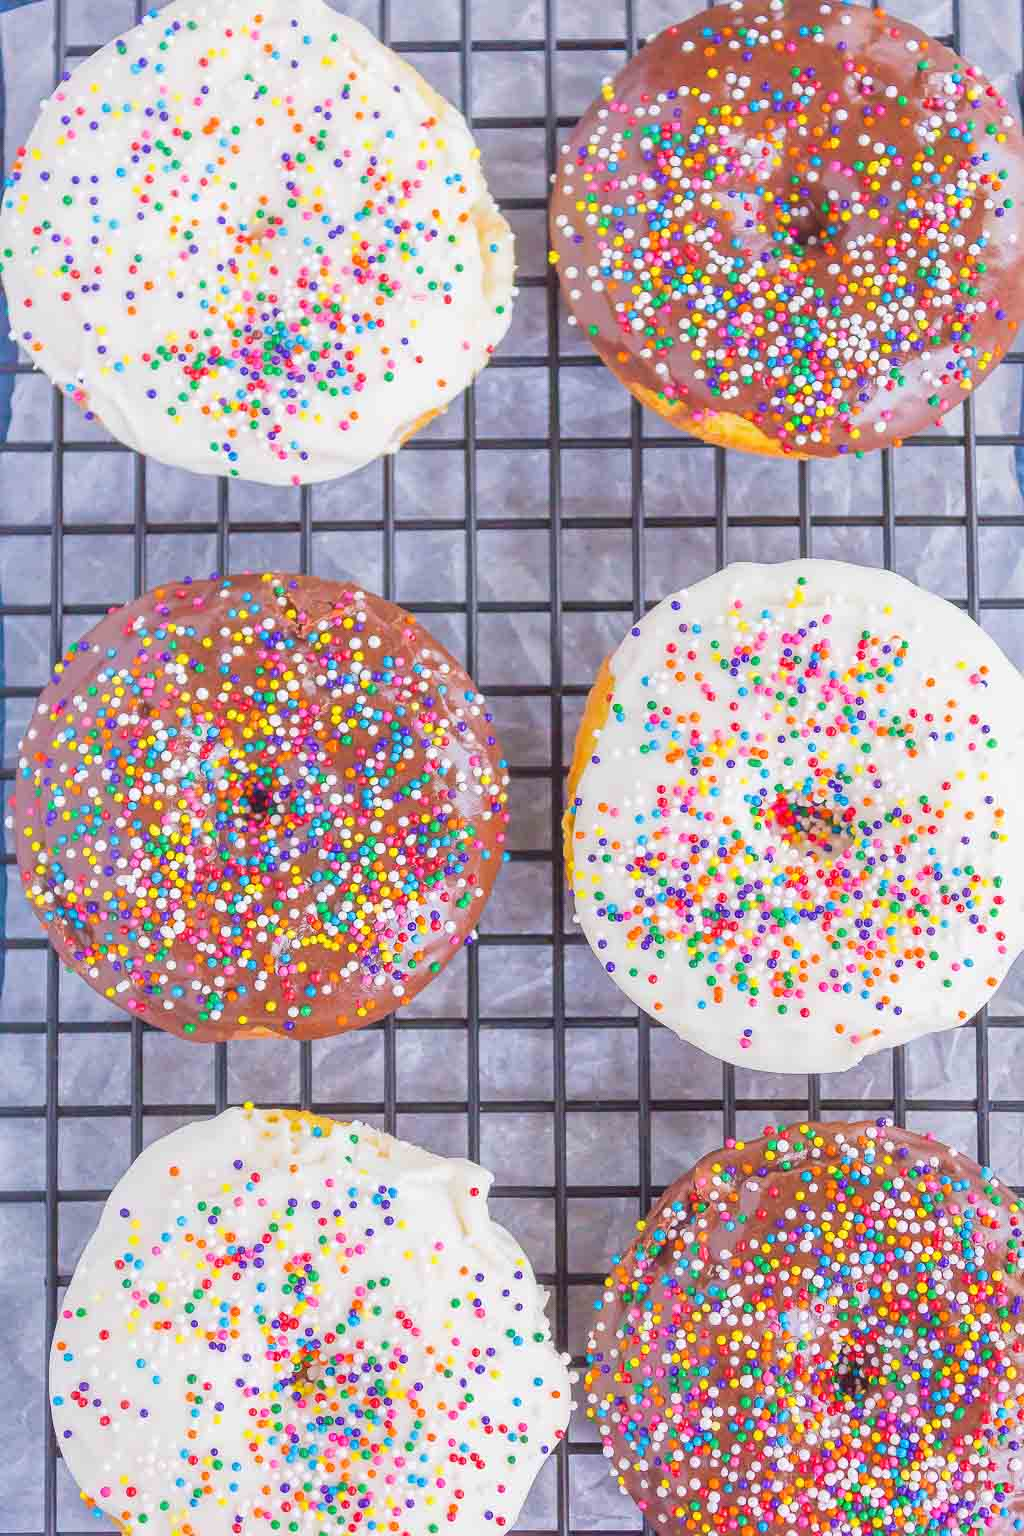 Cake Mix Donuts are light, fluffy, and simple to make. With just two ingredients, you can have these baked donuts ready to serve for a fun breakfast or dessert!